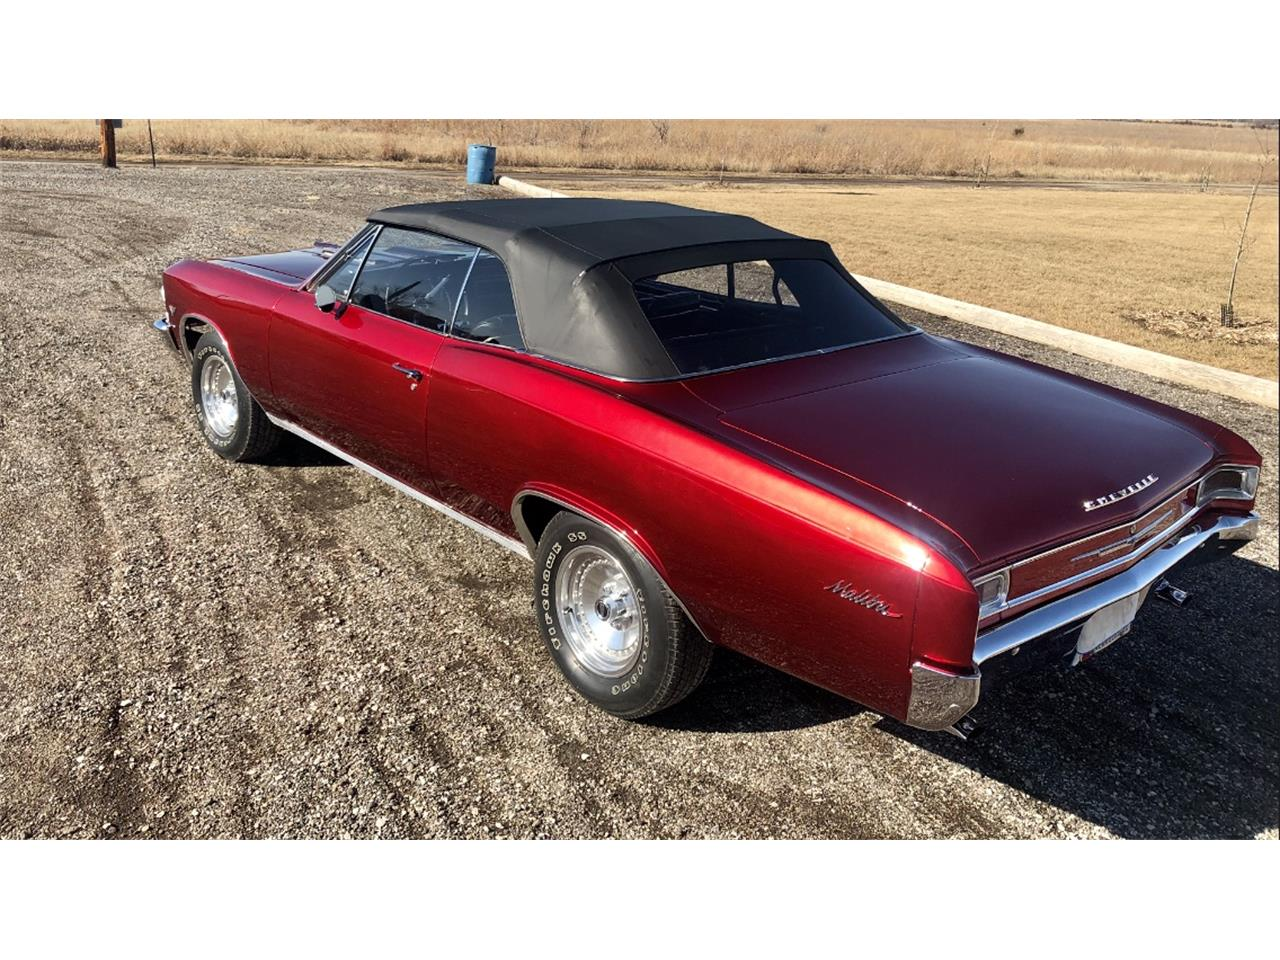 1966 Chevrolet Chevelle Malibu (CC-1317015) for sale in Waverly, Nebraska